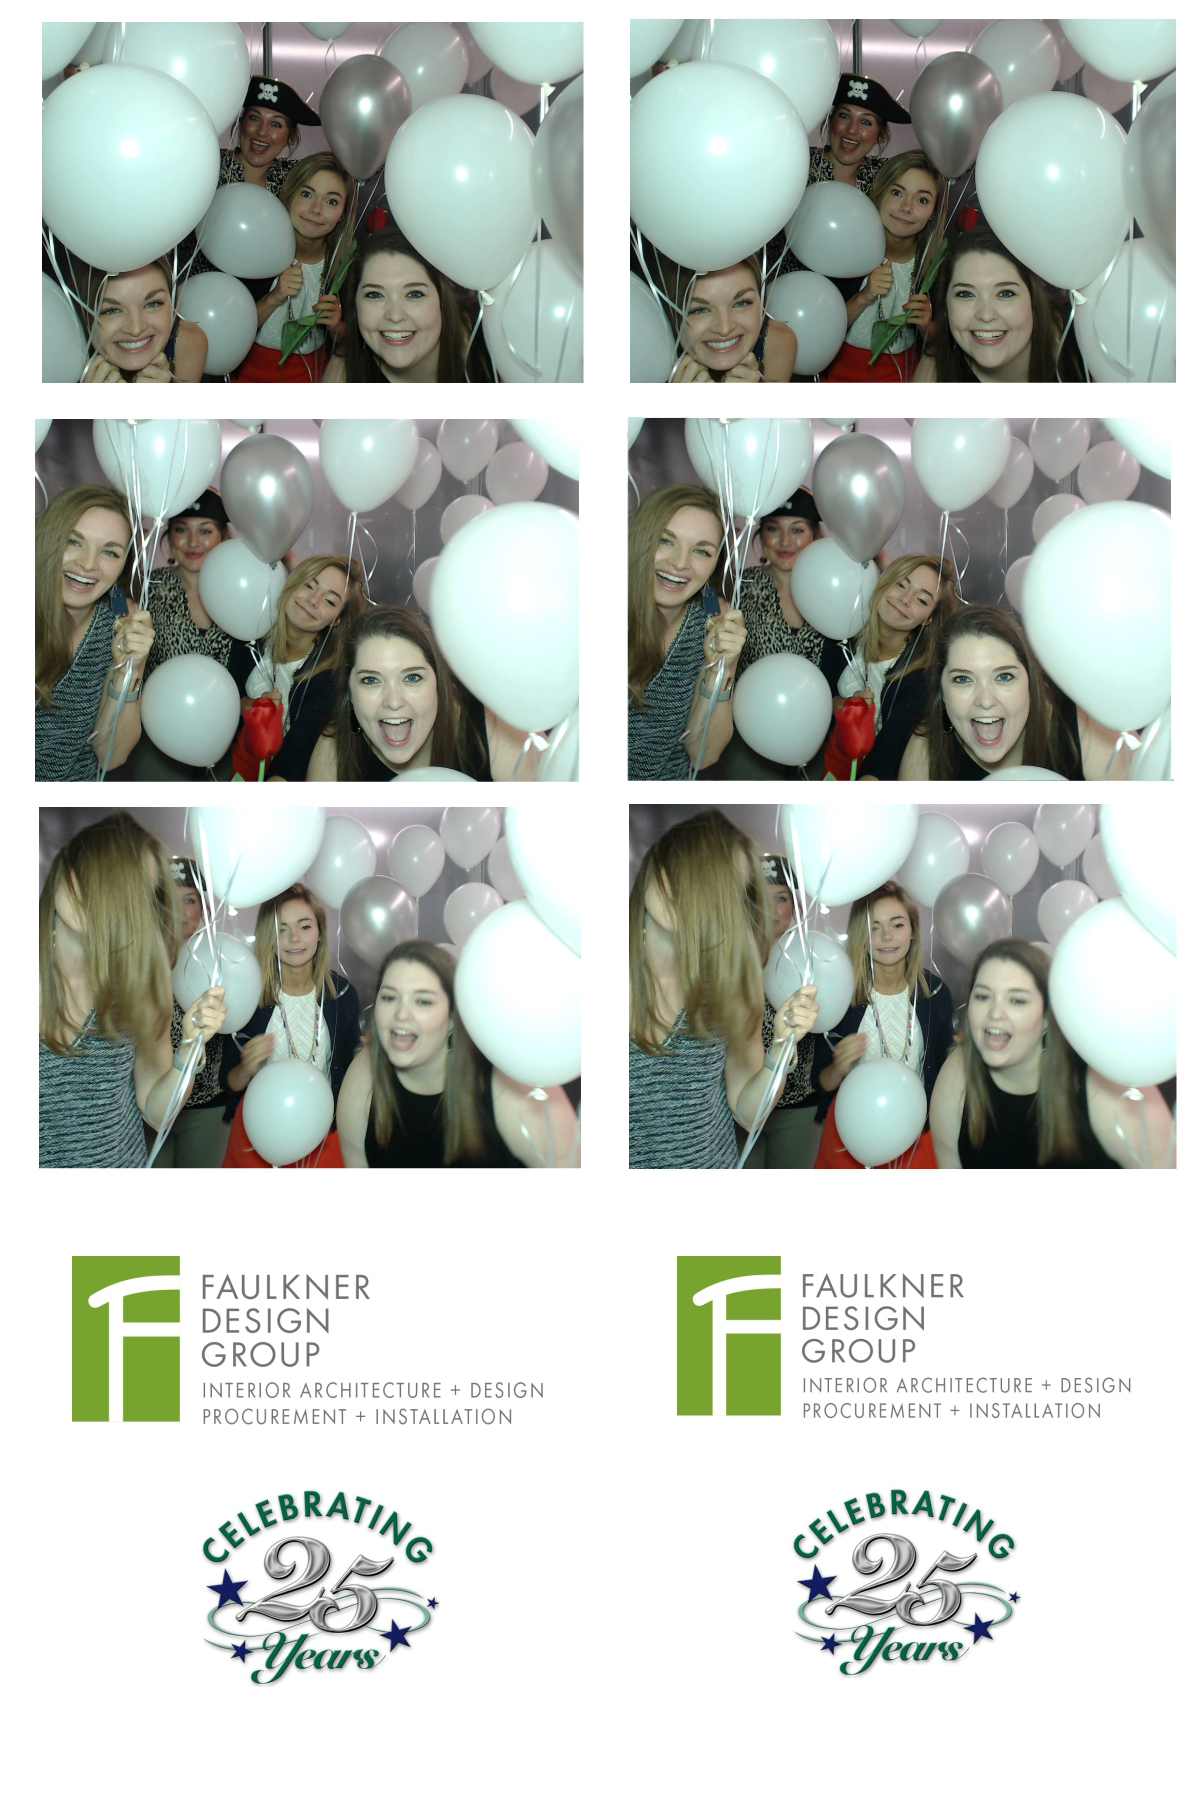 Some of our incredible designers celebrating FDG's 25th Anniversary with balloons at the photo booth!